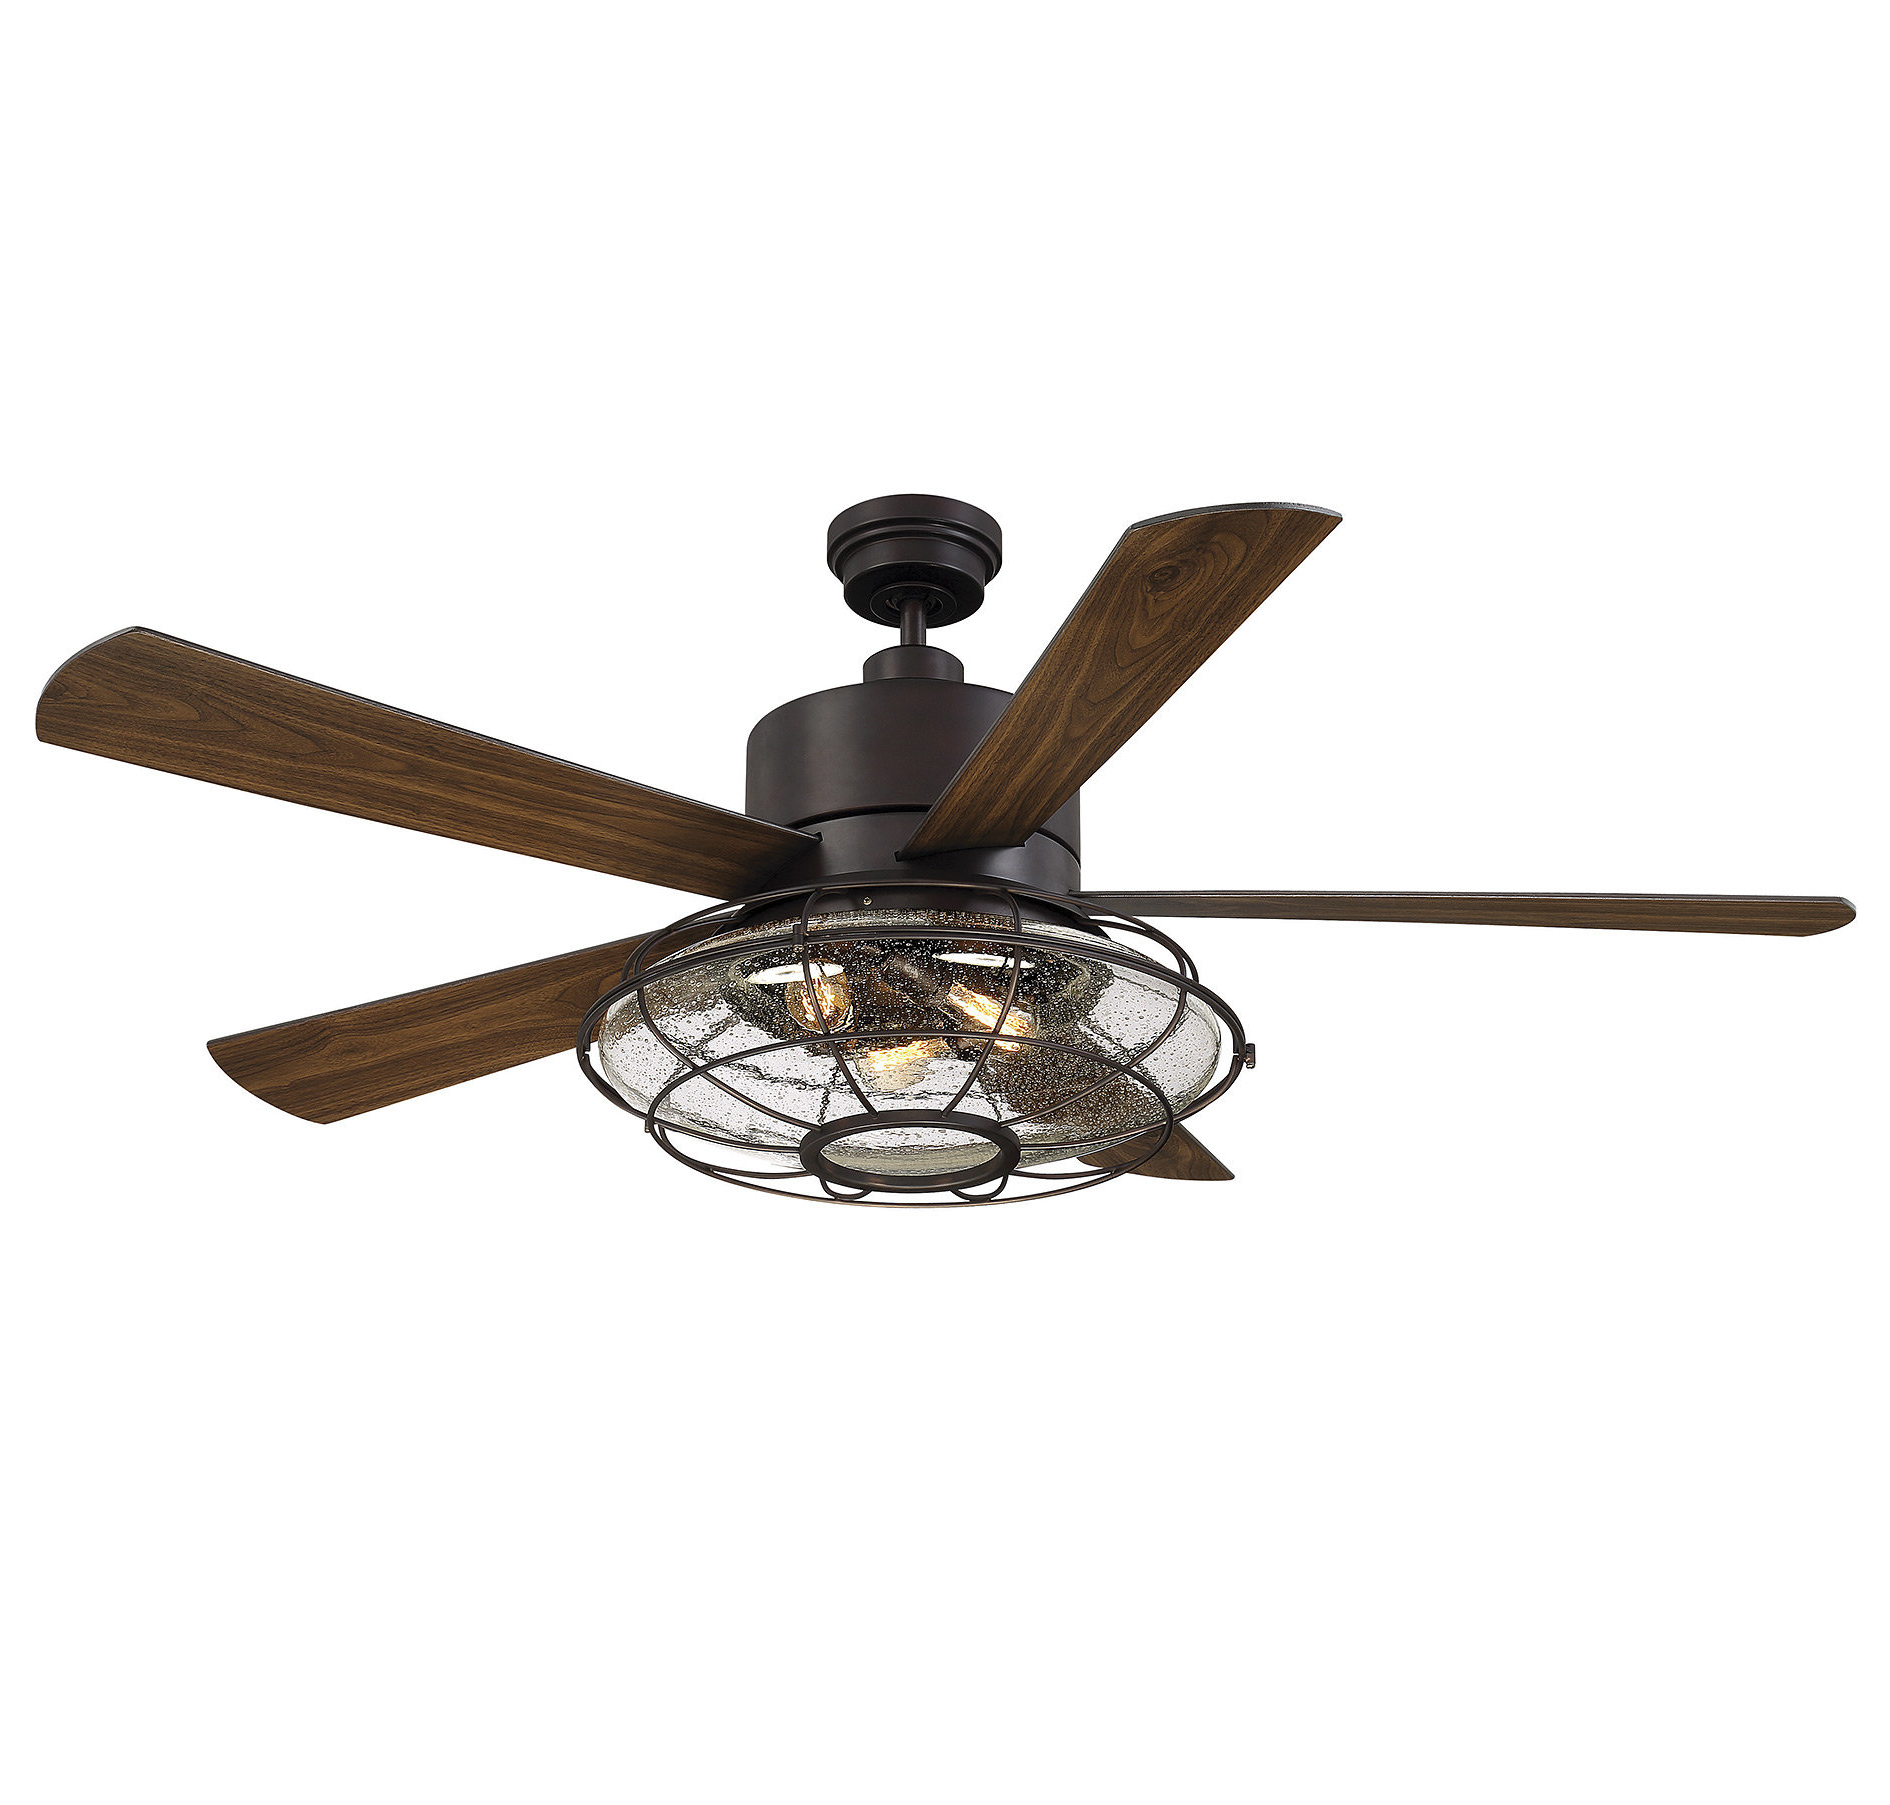 Well Known Kyla 5 Blade Ceiling Fans Intended For Farmhouse & Rustic Trent Austin Design Ceiling Fans (View 8 of 20)